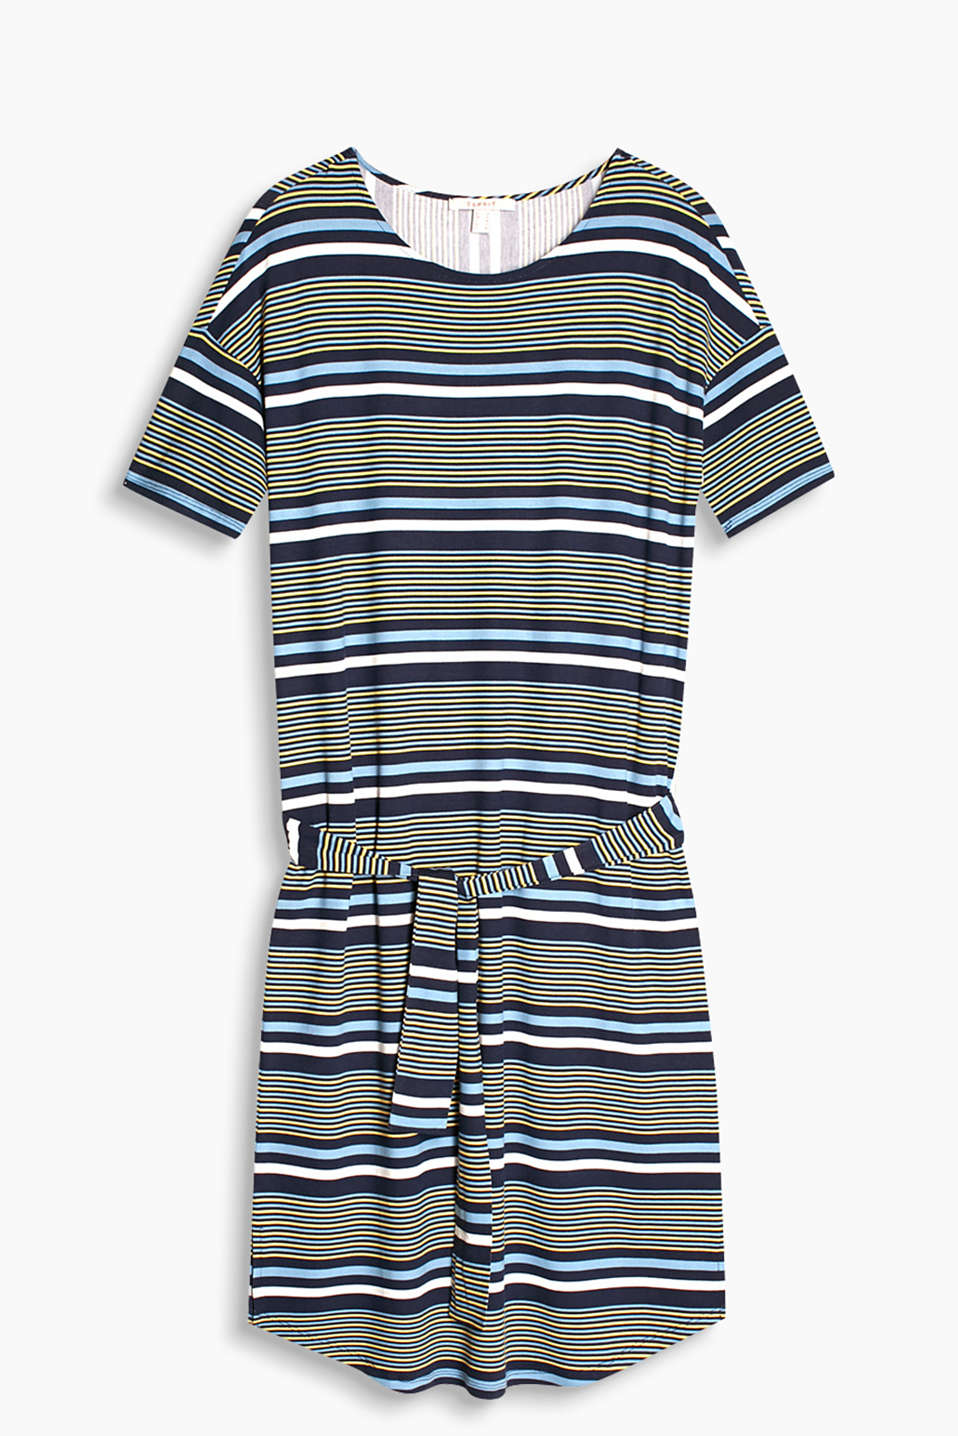 Floaty, stretch jersey dress with a stripe pattern and tie-around belt